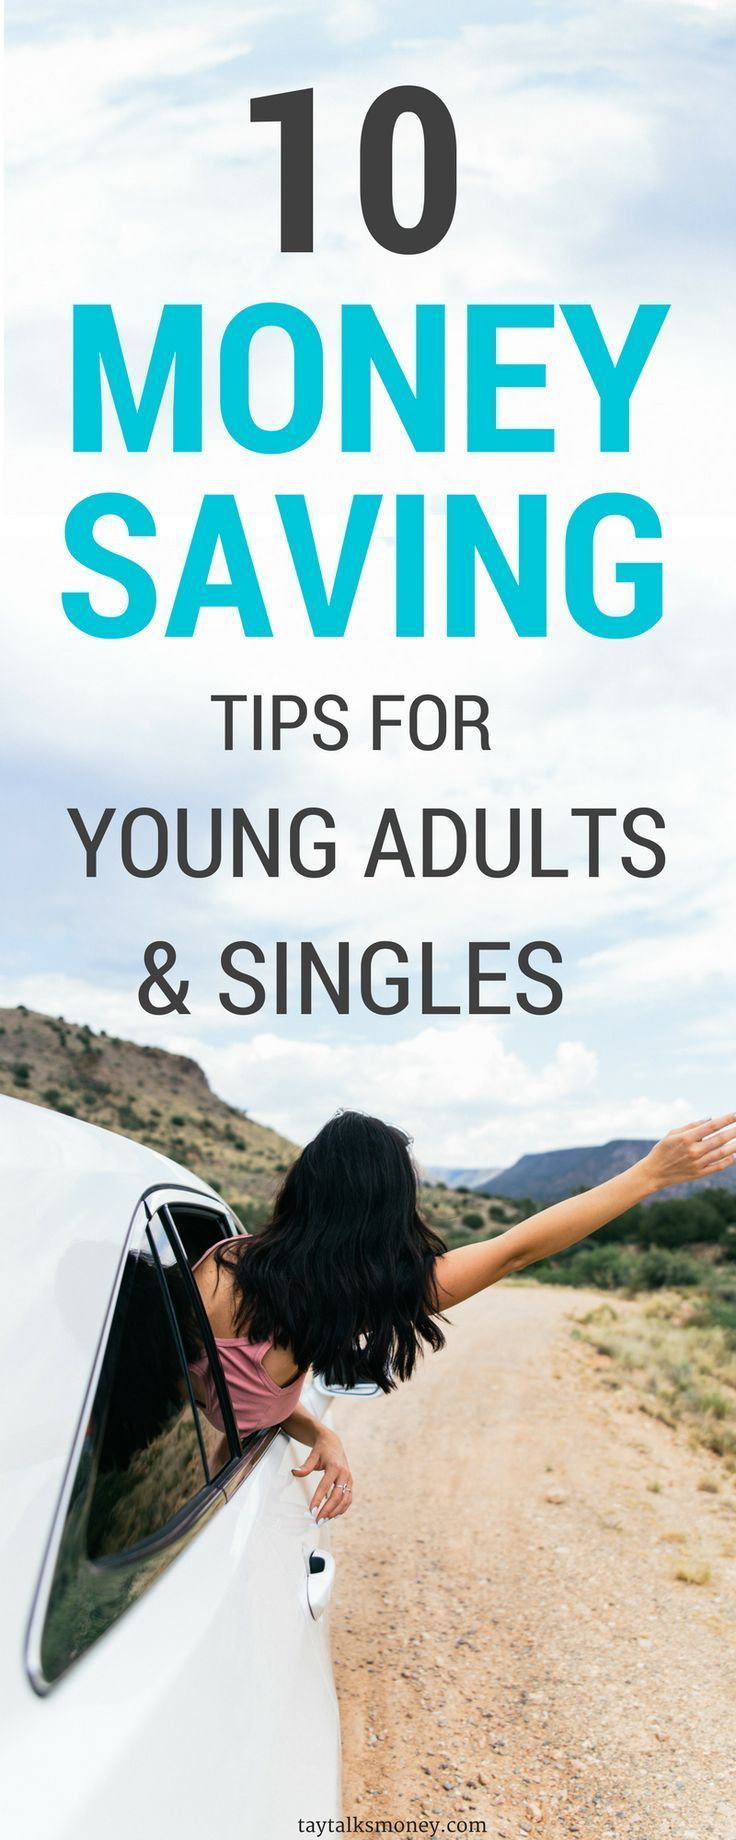 10 Money Saving Tips for Singles and Young Adults – Blog Posts from Tay Talks Money